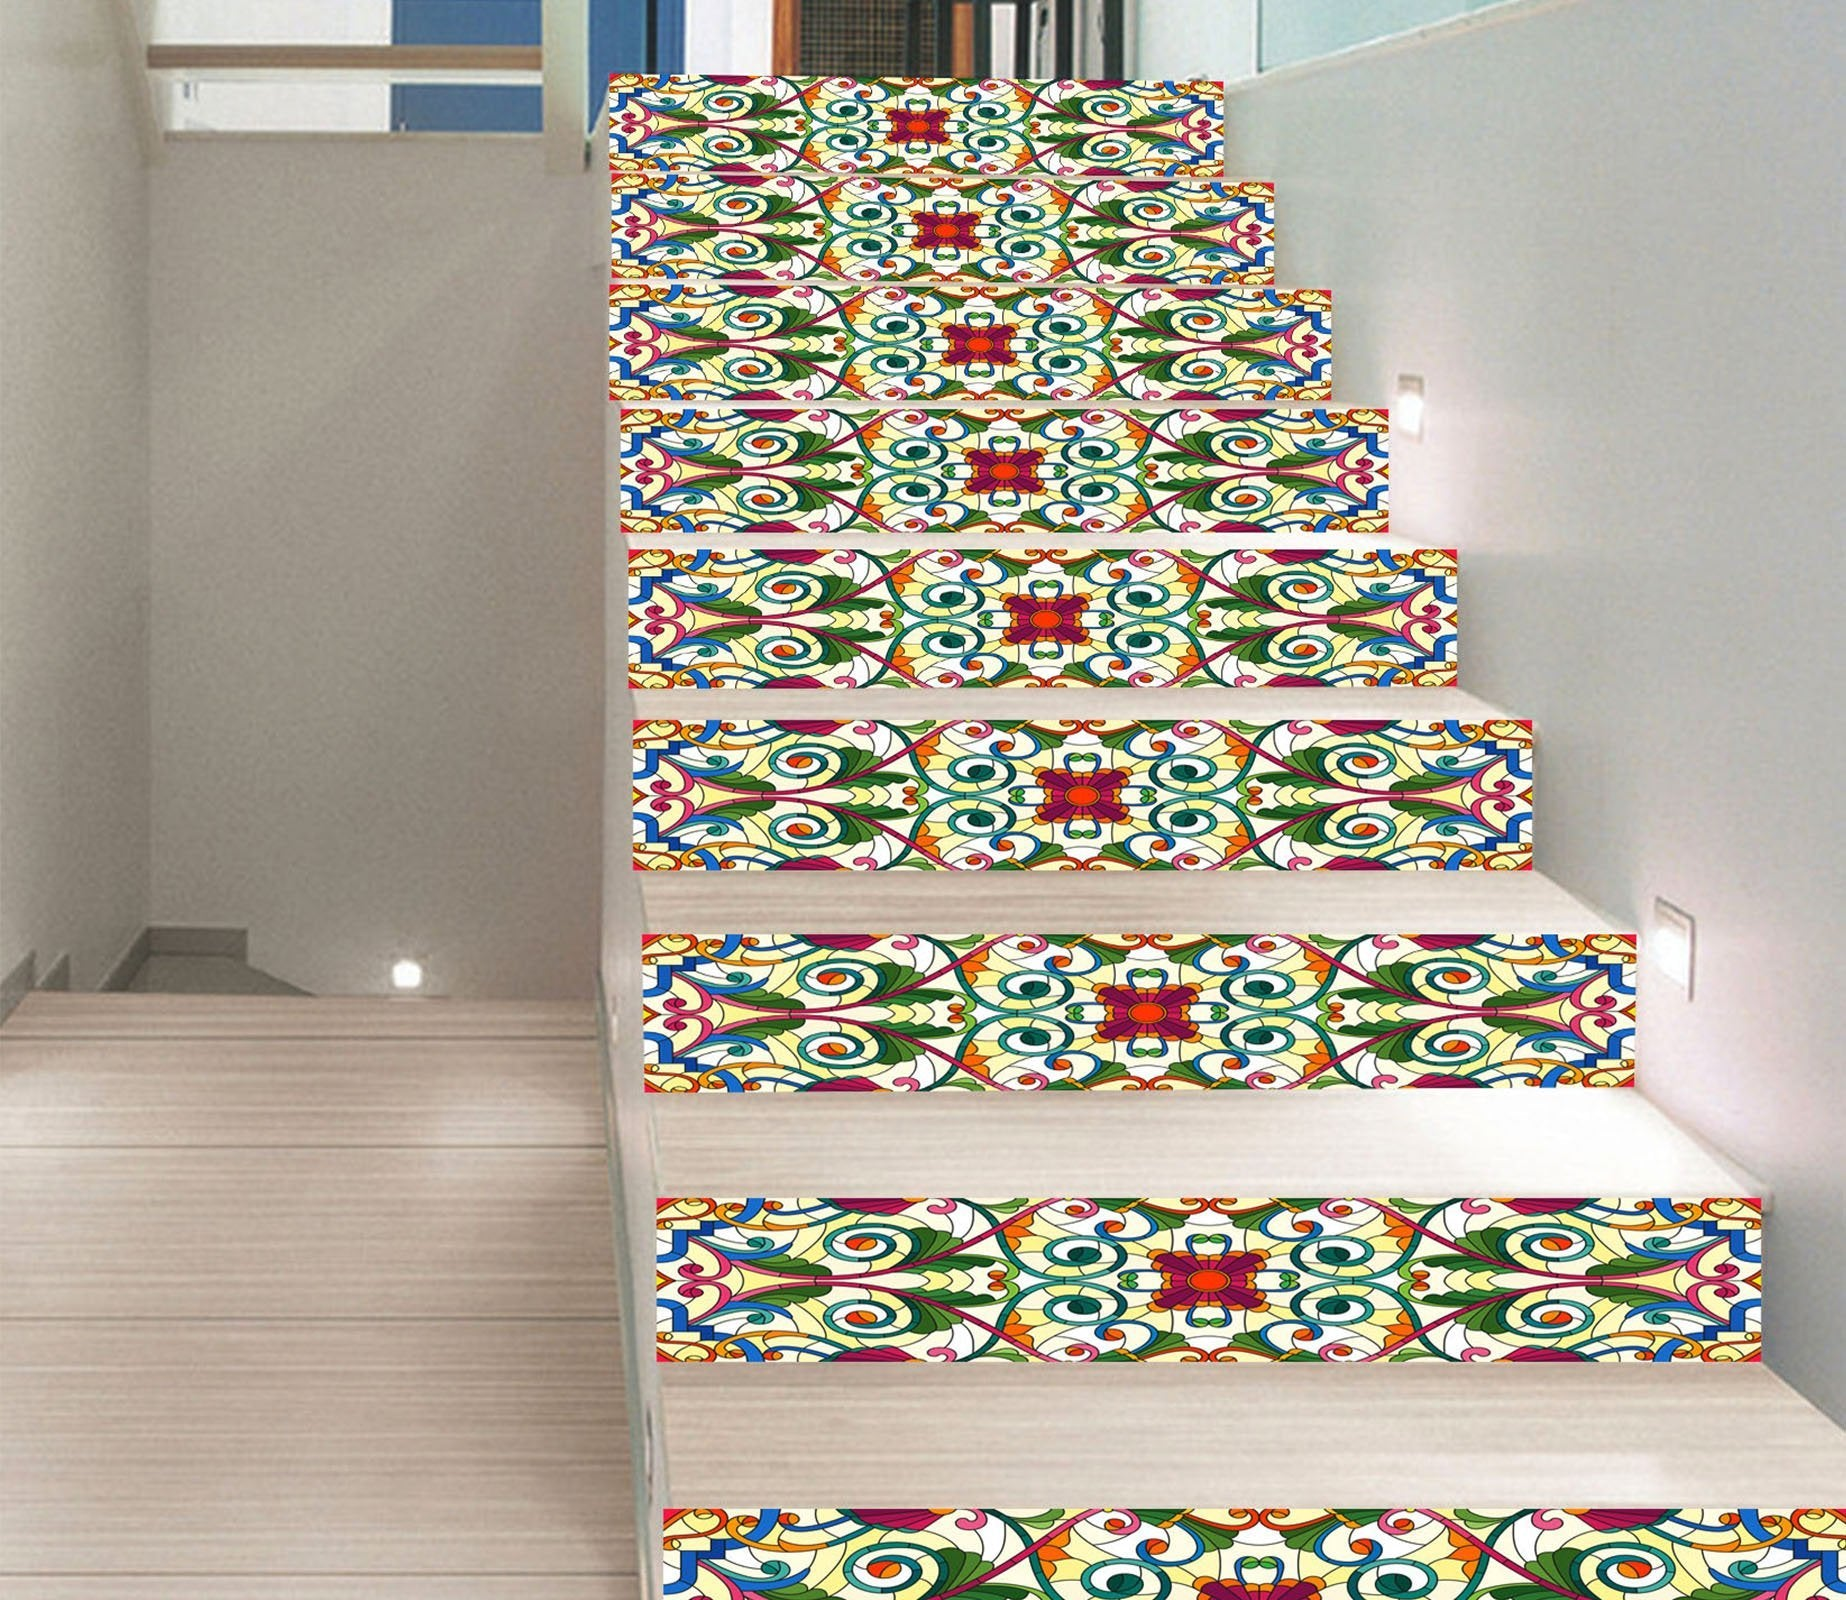 3D Retro Pattern 843 Stair Risers Wallpaper AJ Wallpaper